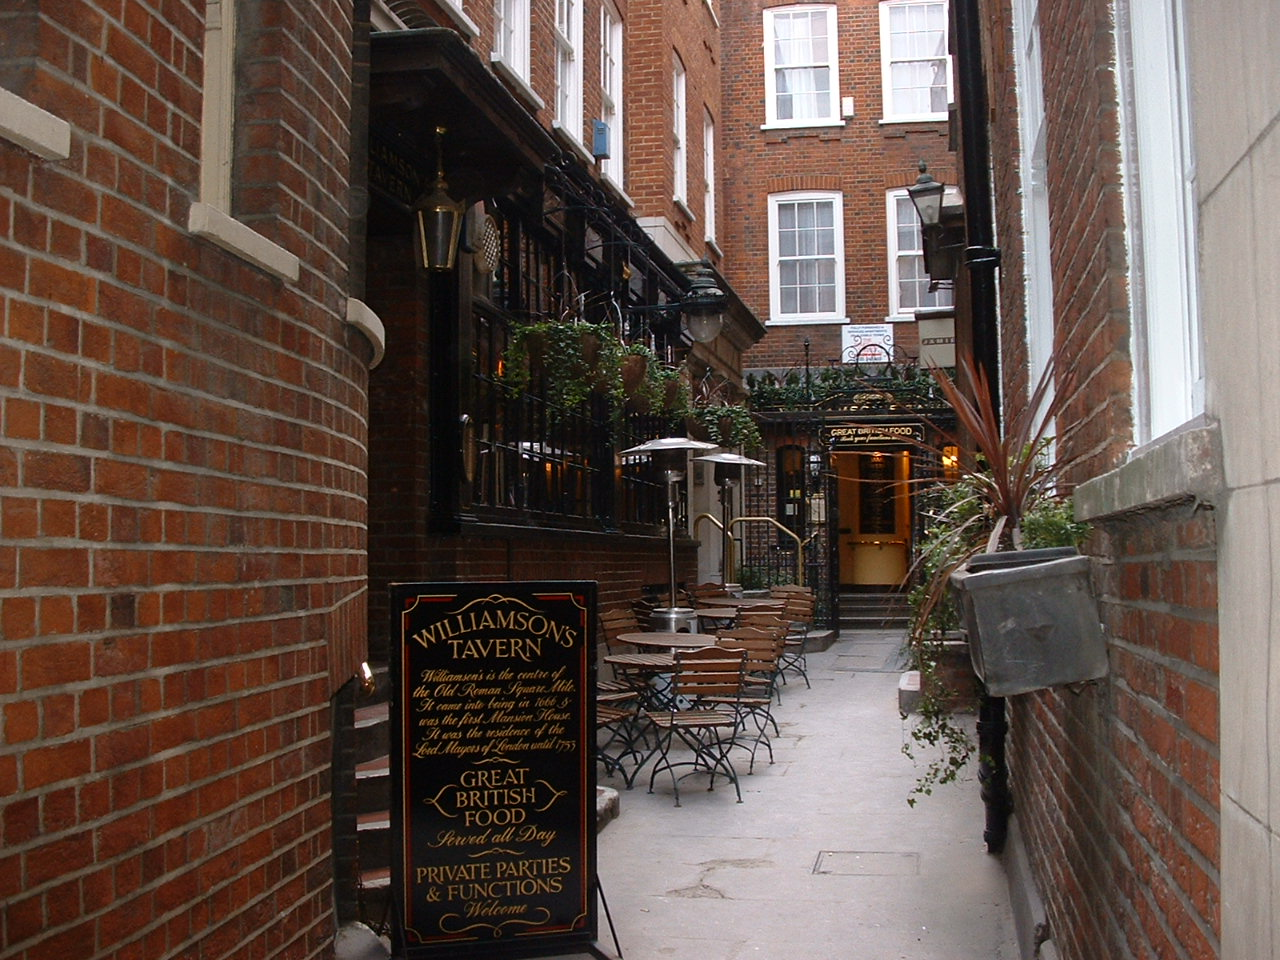 Williamson's Tavern off Bow Lane